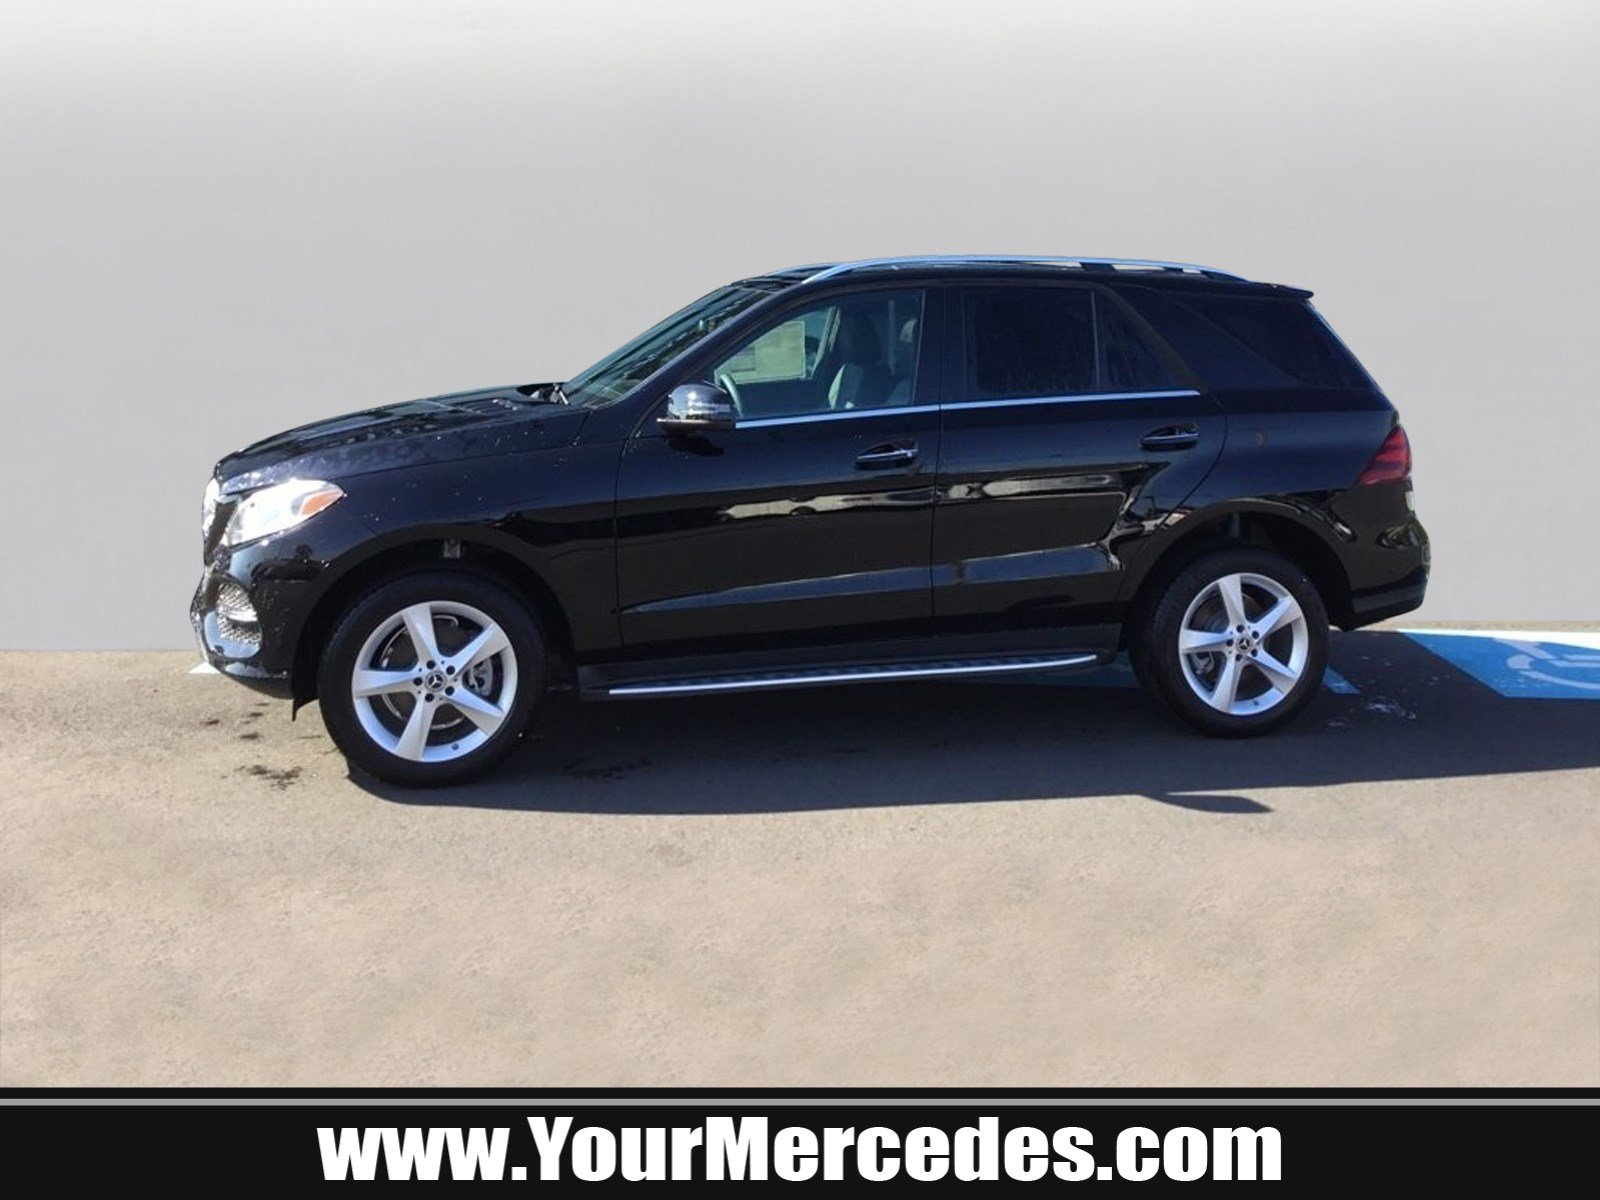 New 2018 Mercedes Benz GLE GLE 350 SUV in Egg Harbor Township